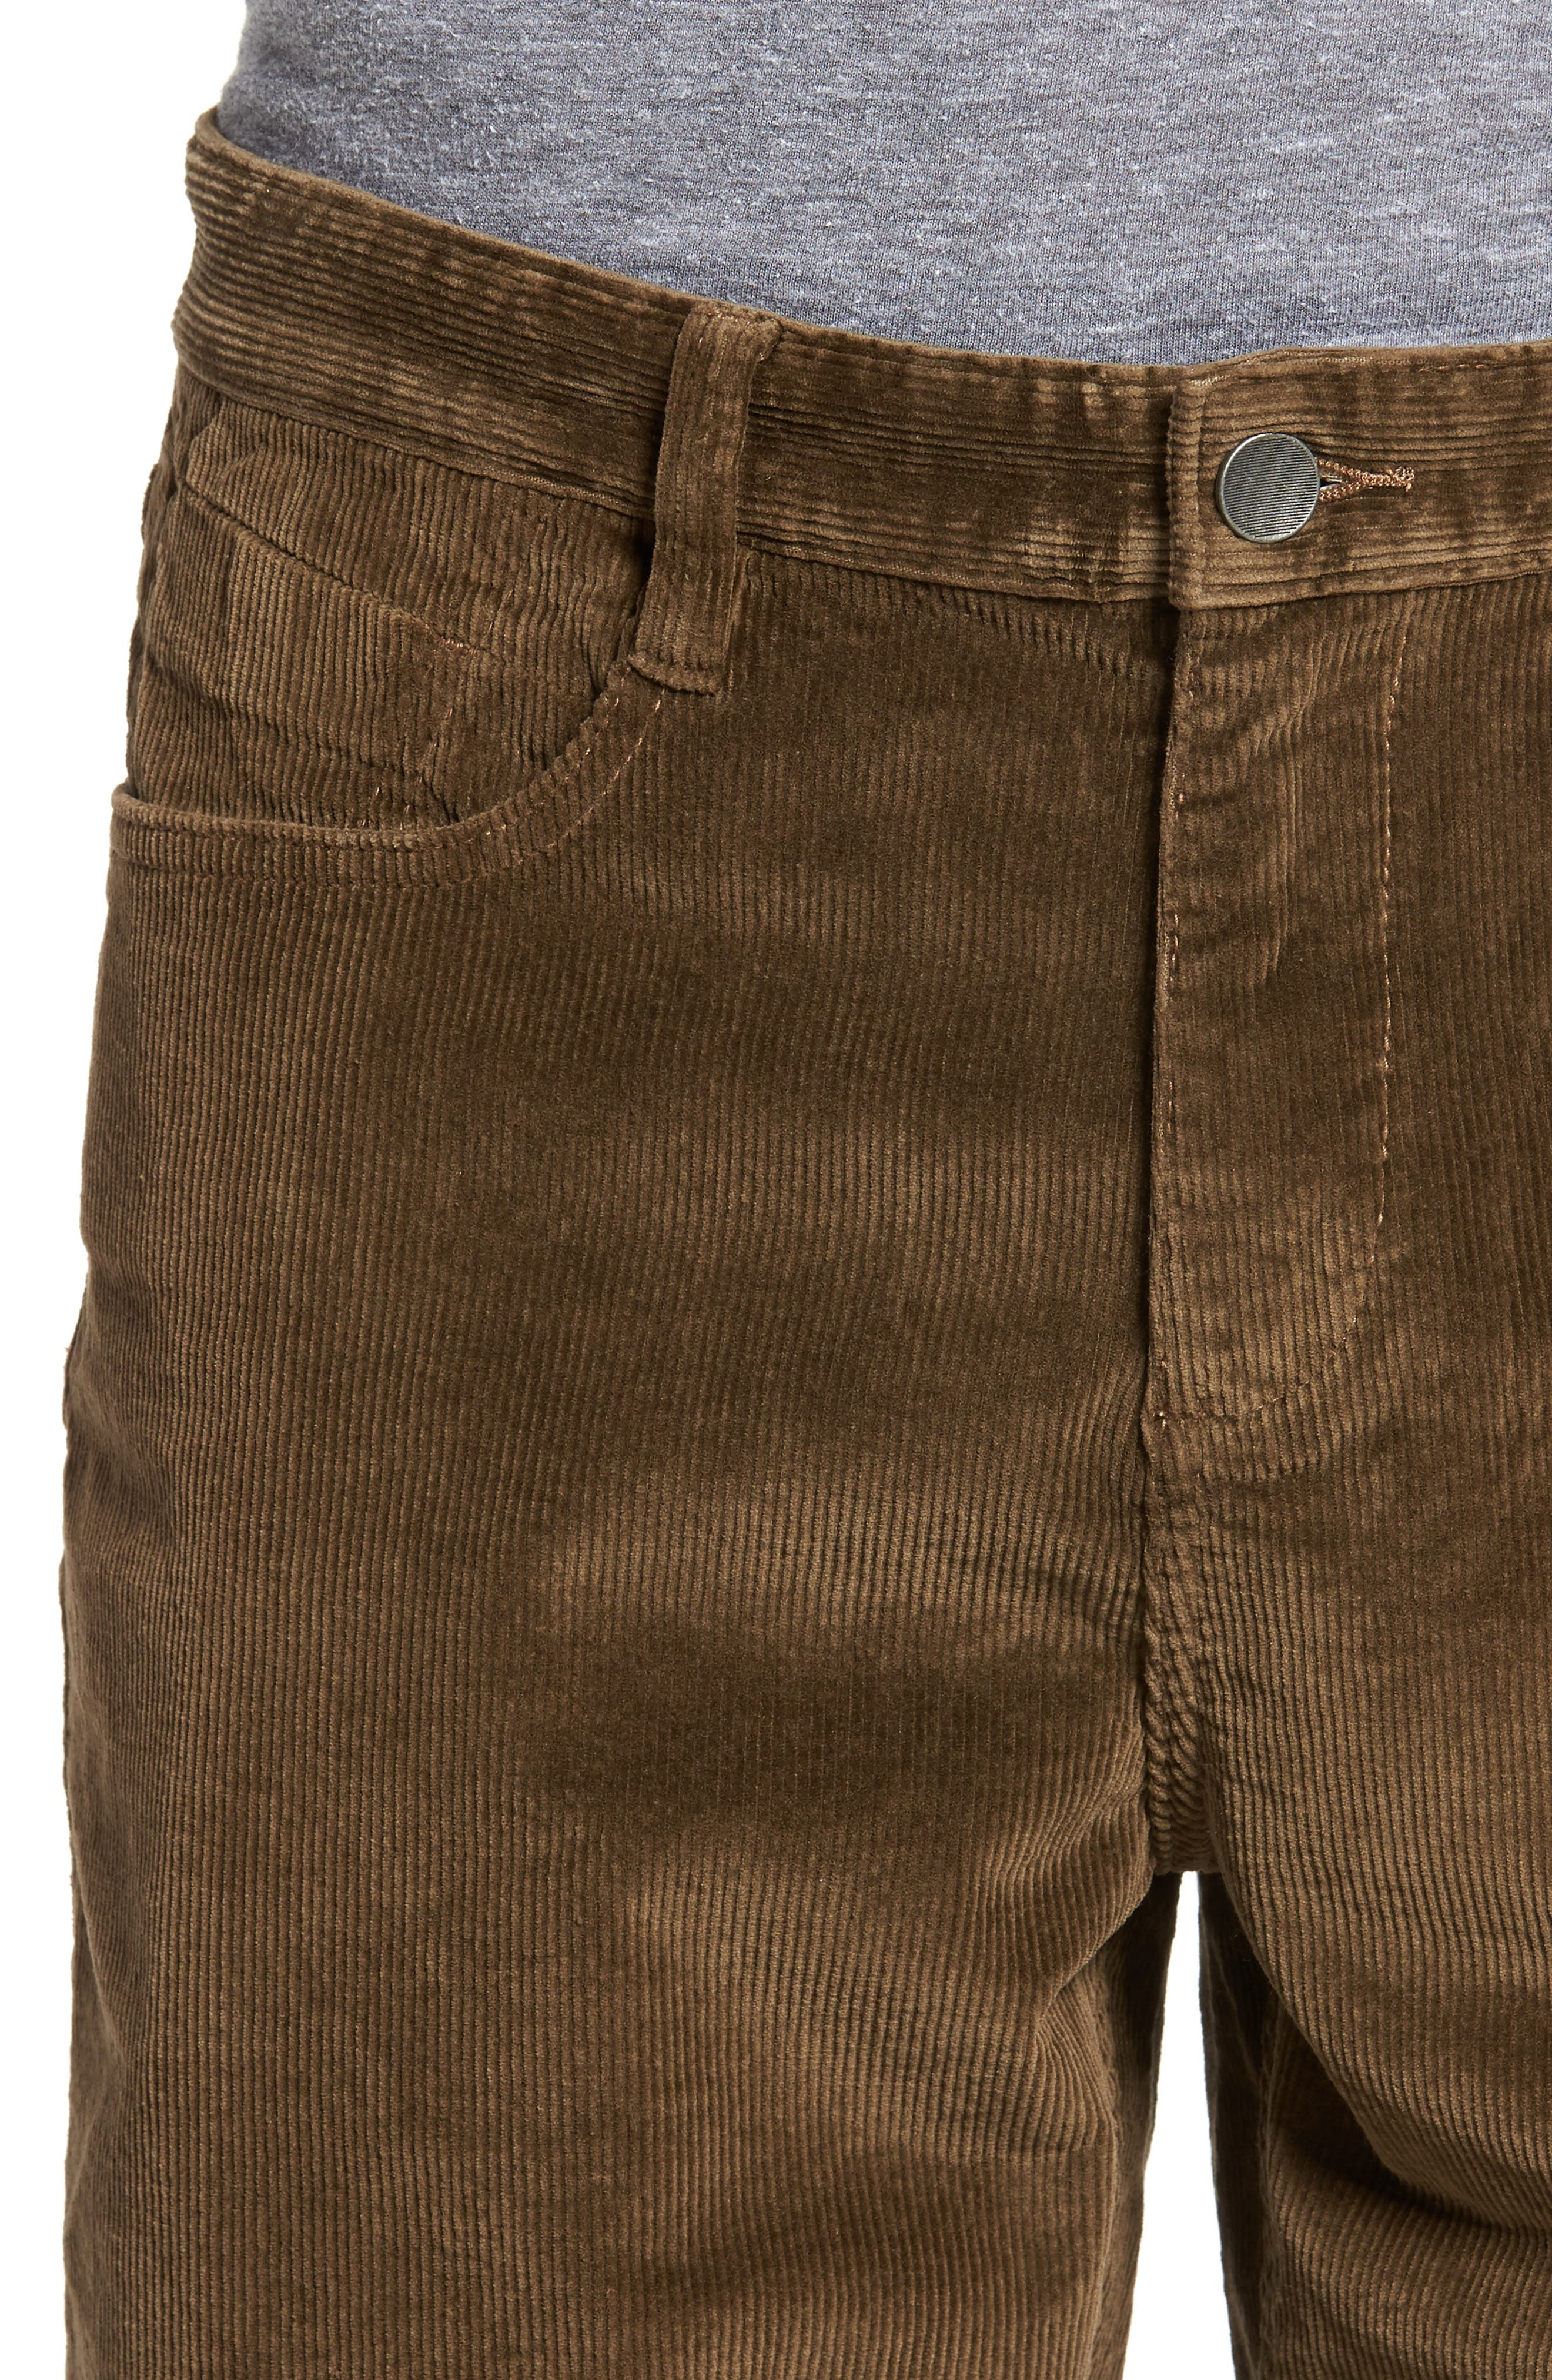 Outsider Corduroy Shorts,                             Alternate thumbnail 4, color,                             Brown